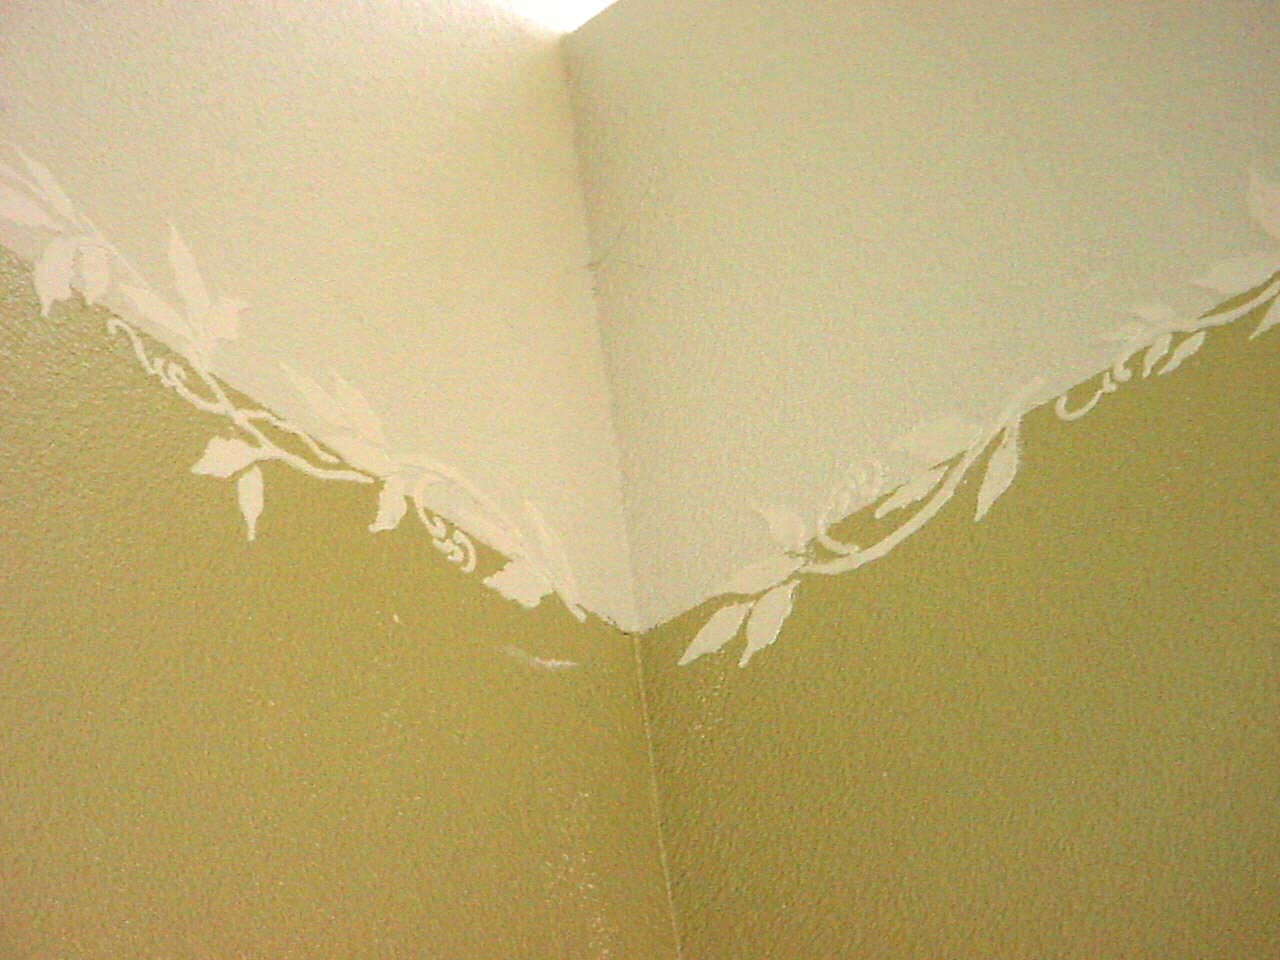 plaster_stencil_vine_wall Painting Ideas For Kitchen Walls on ideas for painting cabinets, ideas for painting home, ideas for painting hallways, ideas for painting table tops, ideas for painting windows, paints colors kitchen walls, painting your kitchen walls, blue paint for kitchen walls, ideas for painting fireplaces, ideas for painting ceilings,